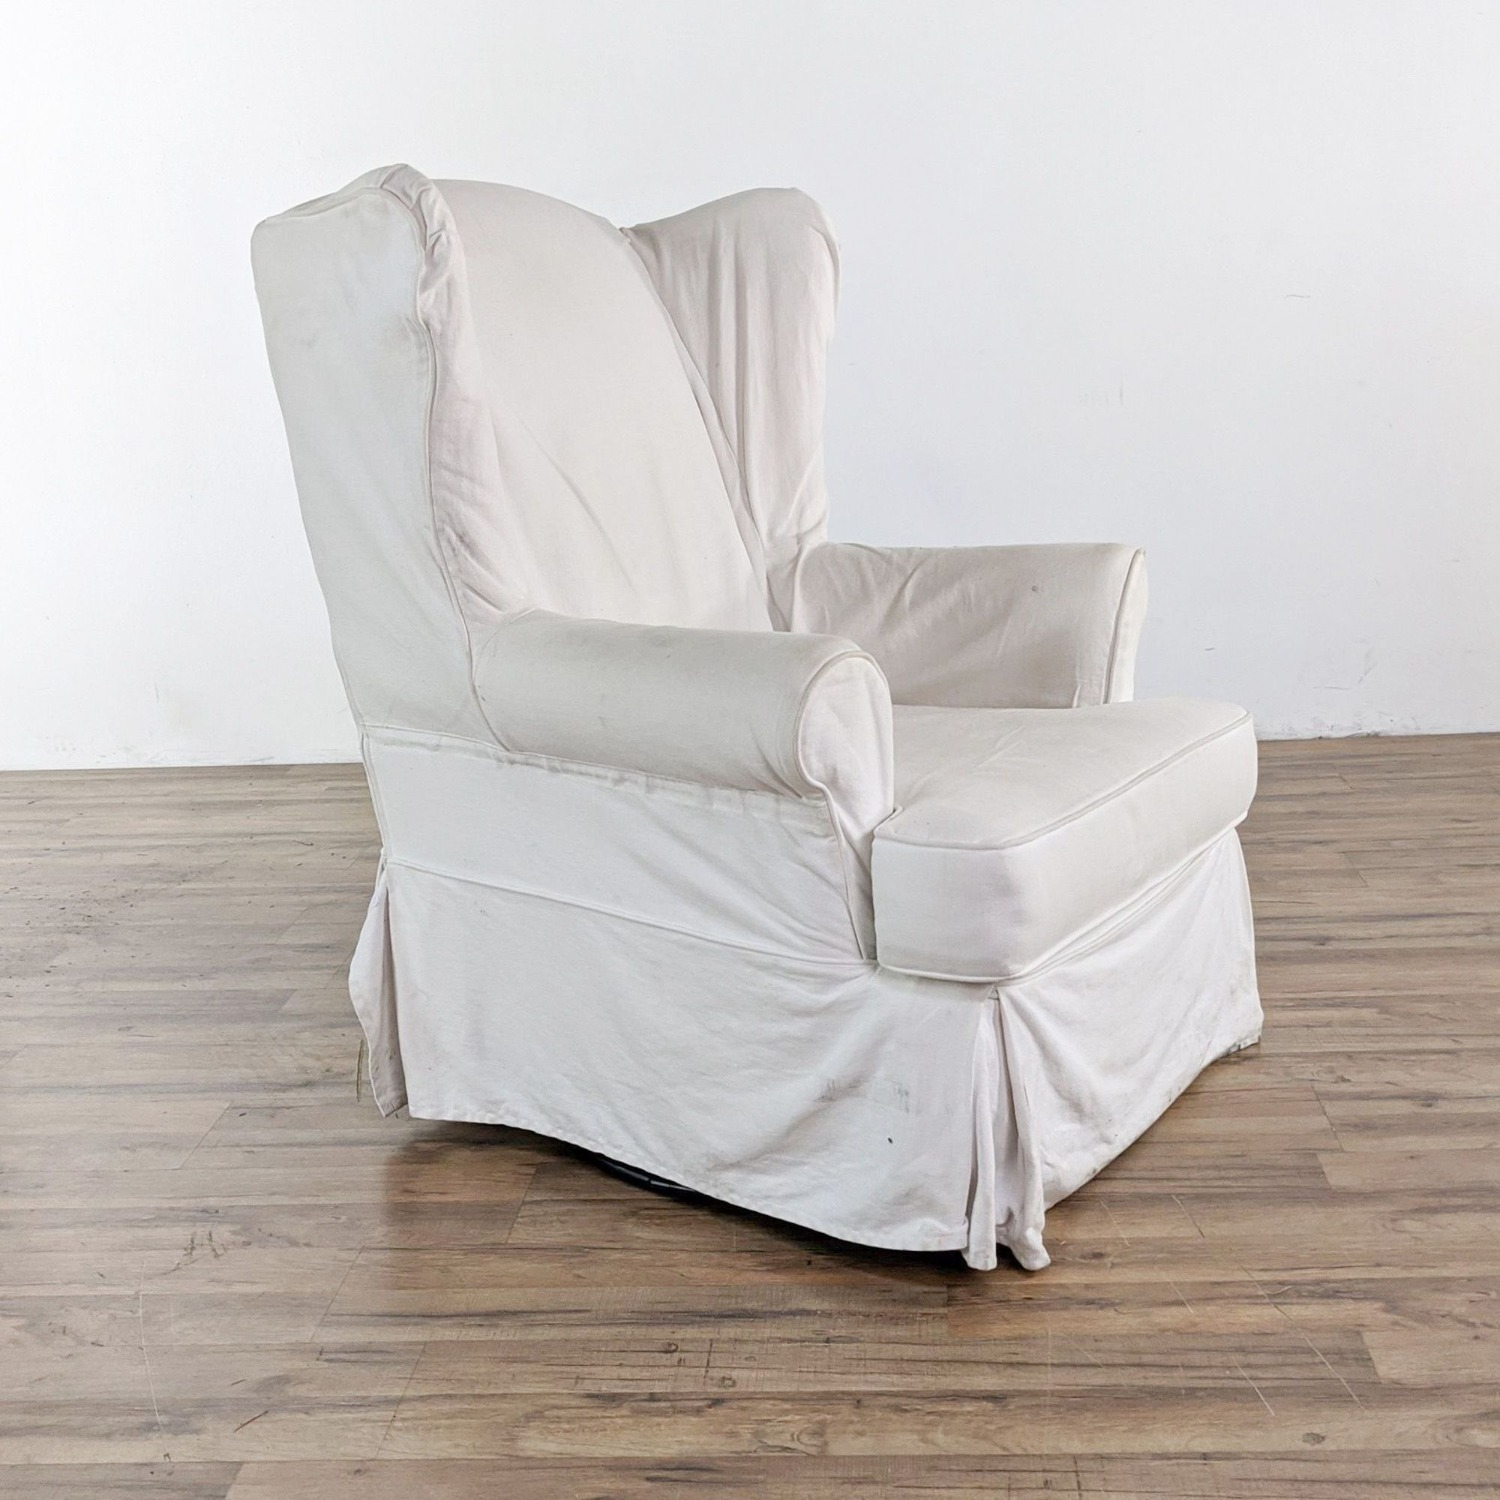 Pottery Barn Glider with Slip Cover - image-2